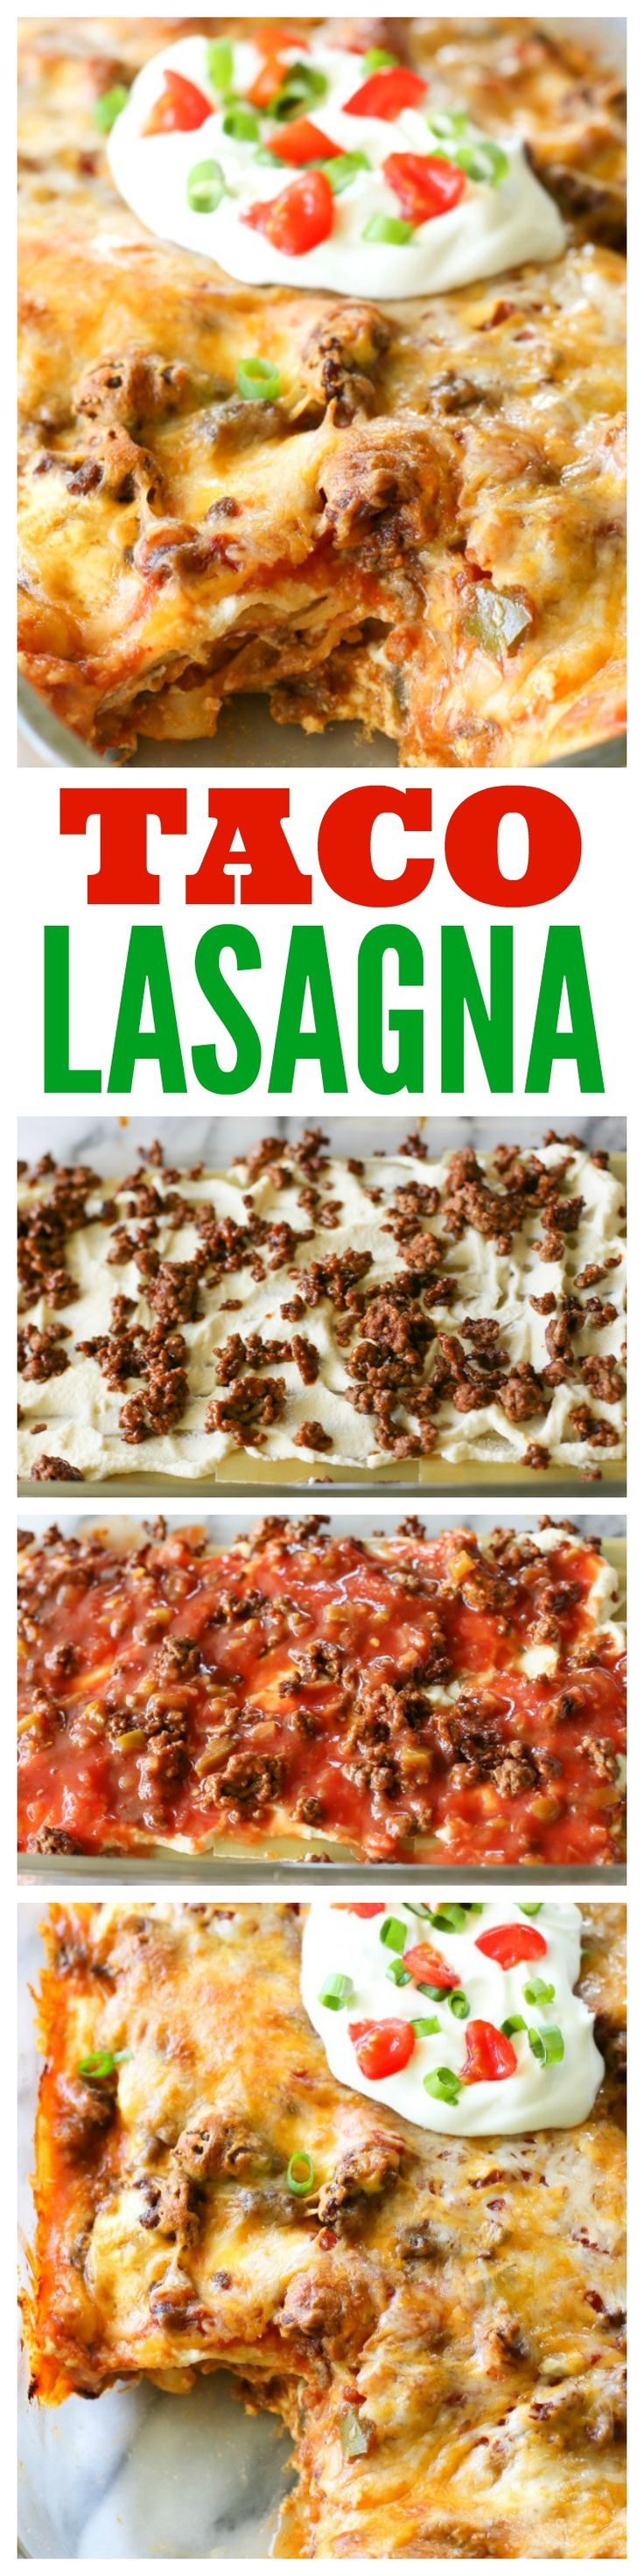 Taco Lasagna - Layers of lasagna noodles, salsa, taco meat, and cheese. Comfort food at its best!